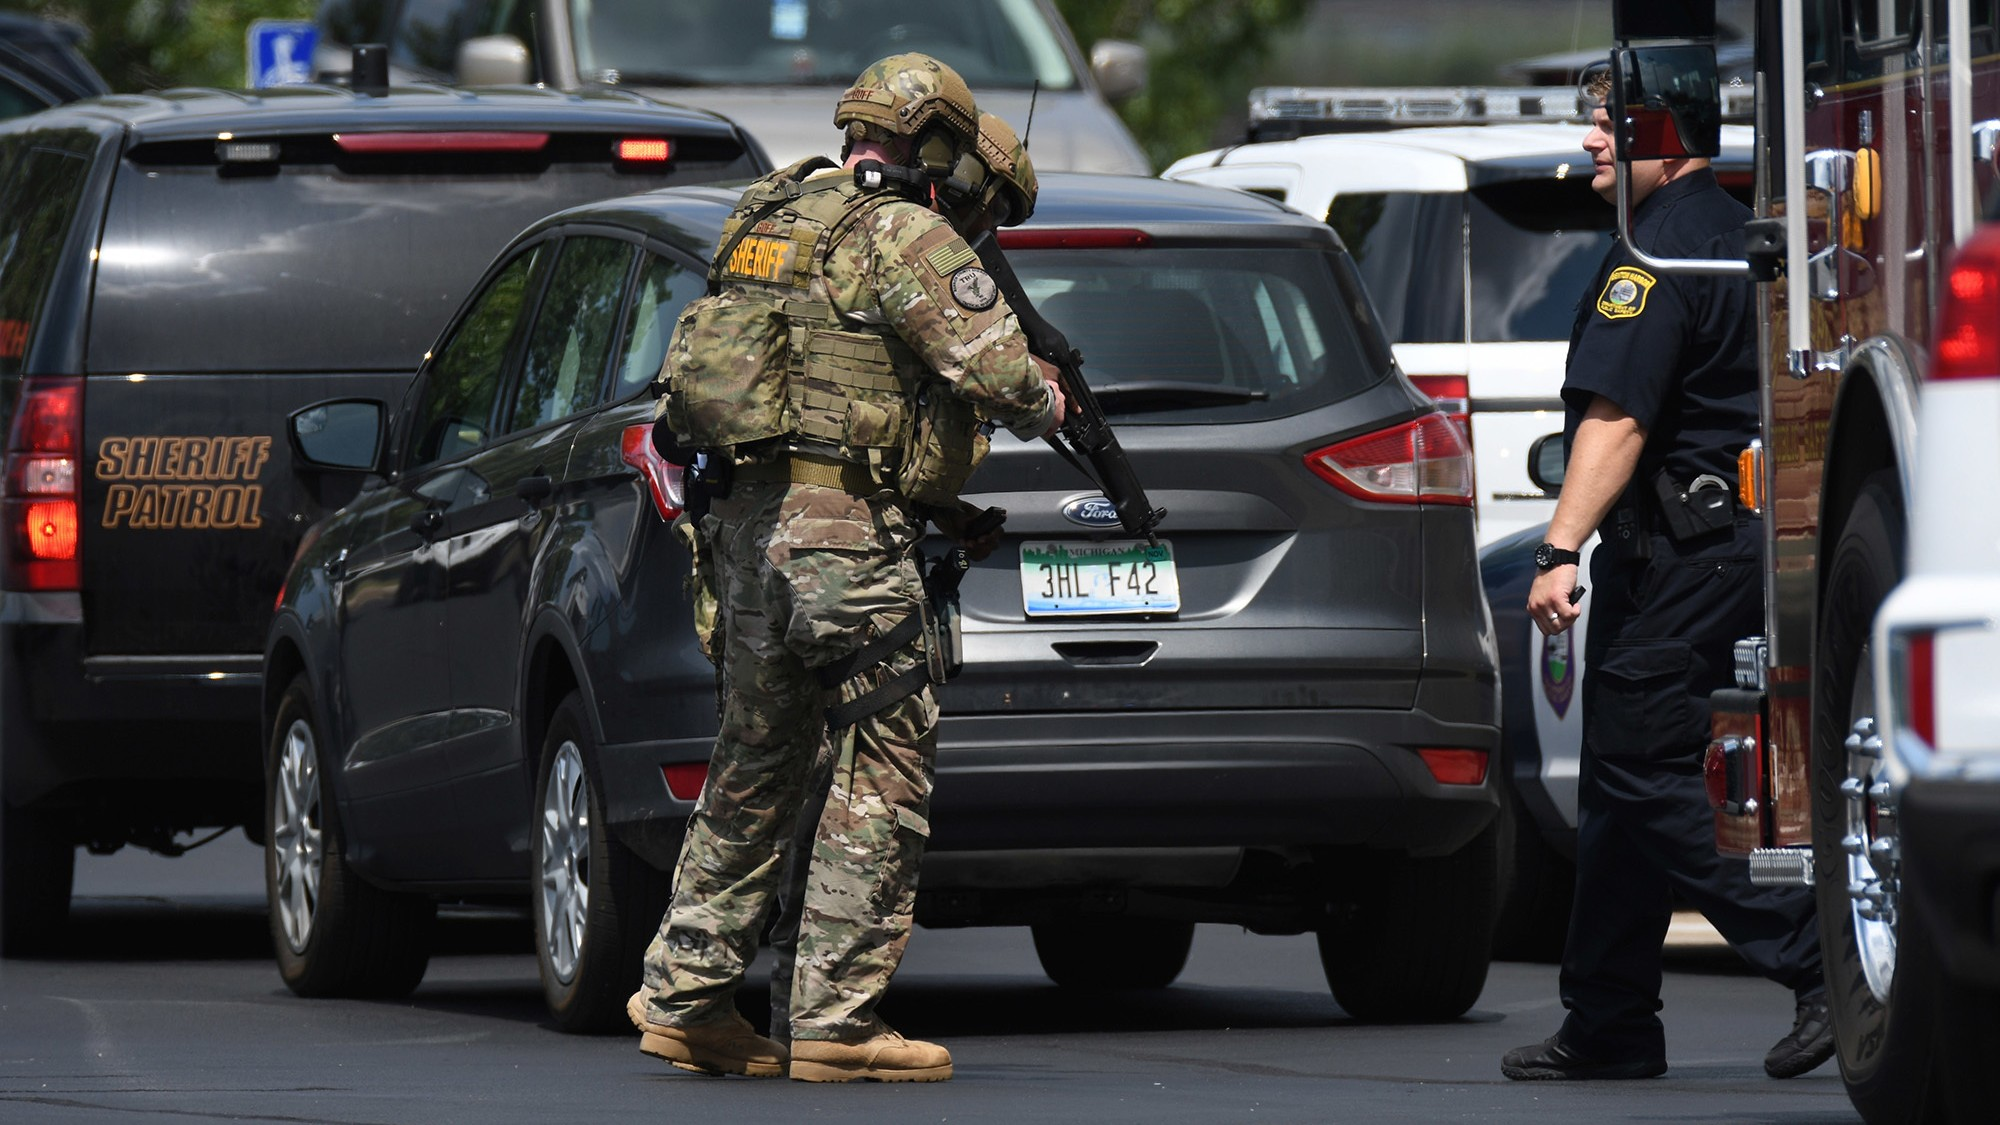 Gunman kills two bailiffs, wounds police officer at Michigan courthouse